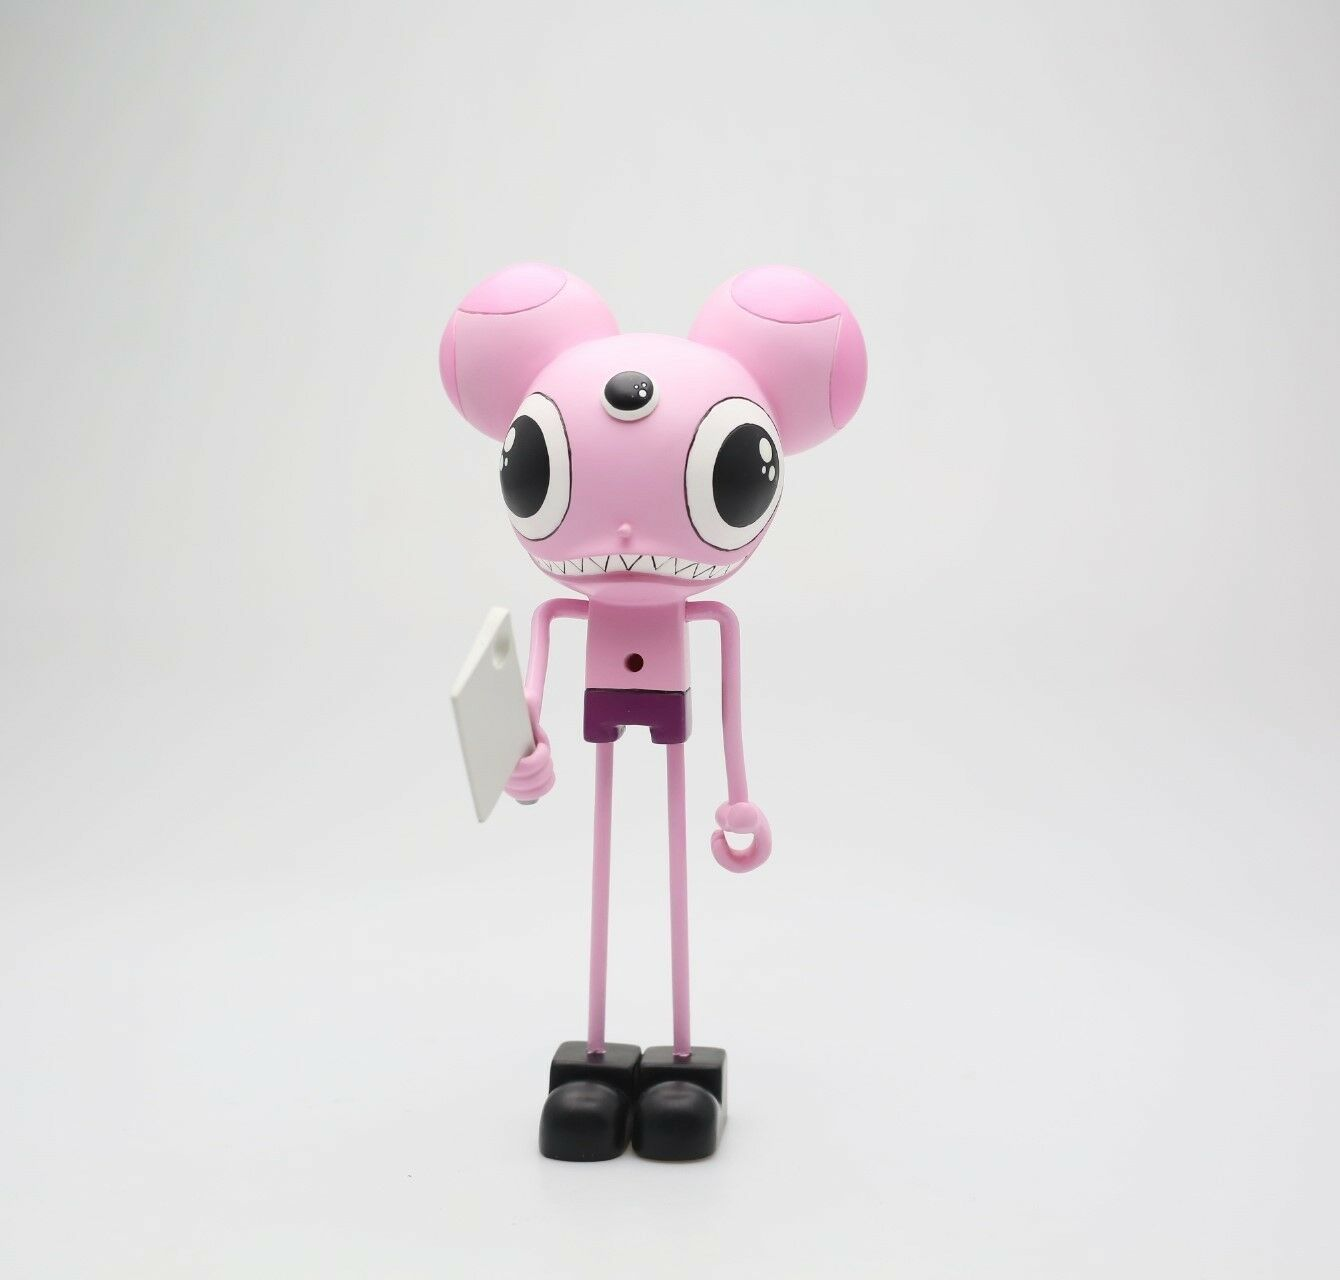 Dalek x CEREALART Space Monkey Pink 9 Inch Action Figure pink